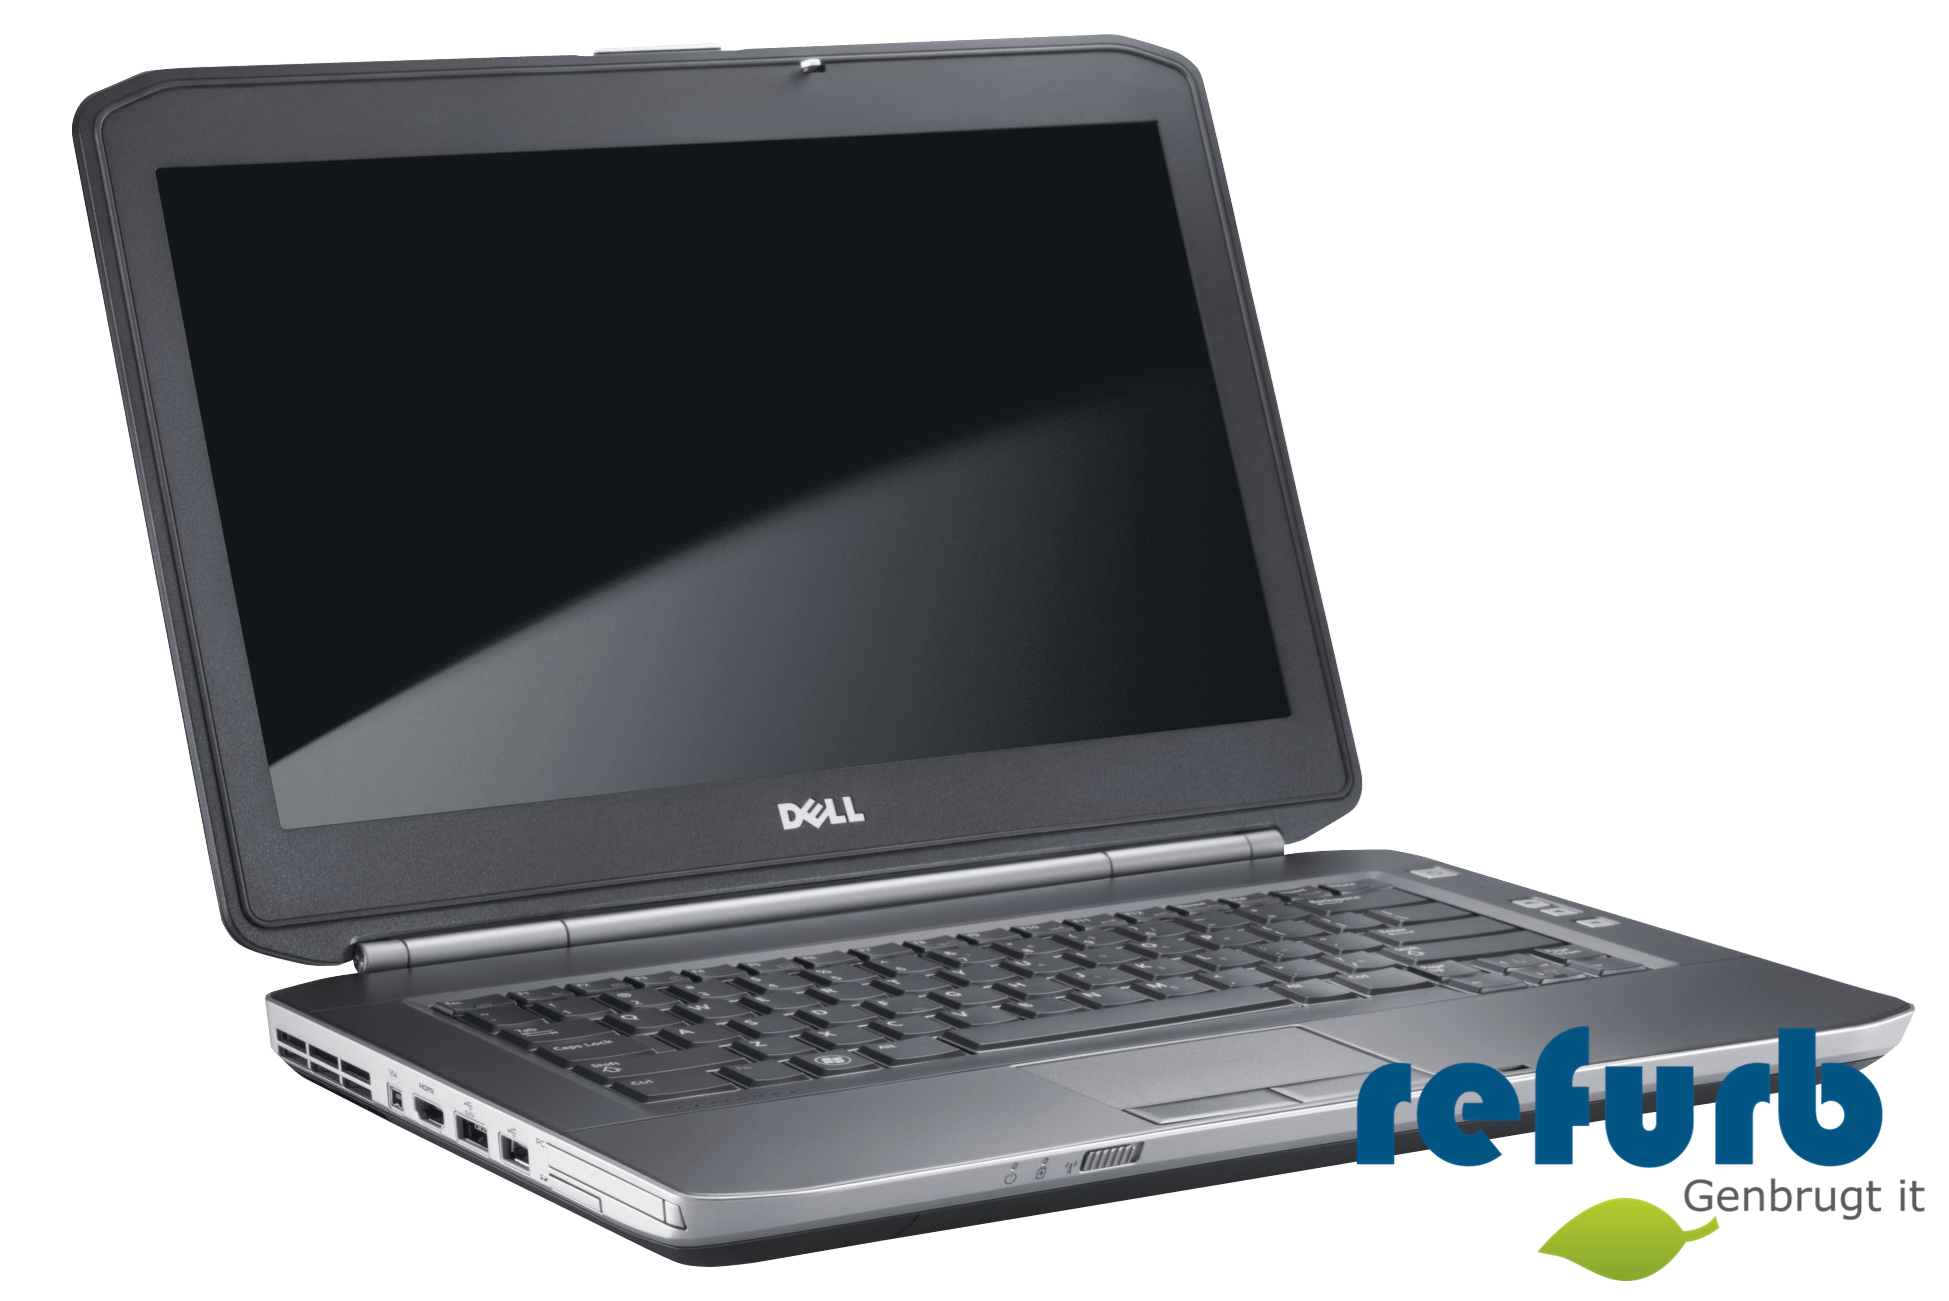 Dell Dell latitude e6420 på refurb